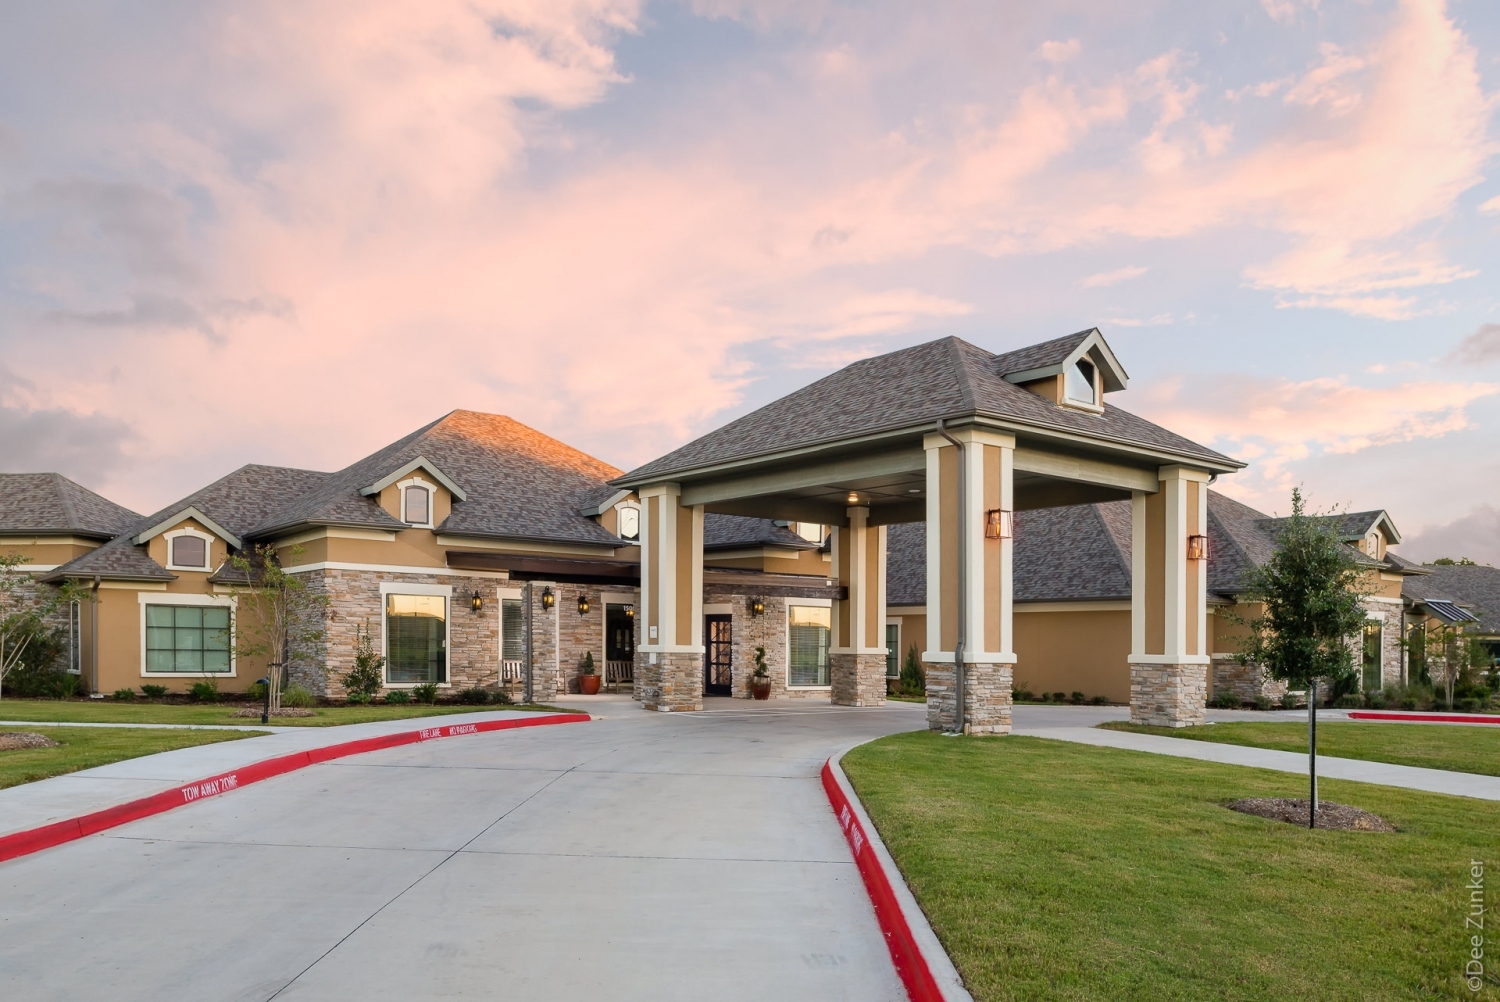 Nursing Home in College Station - near Bryan, TX